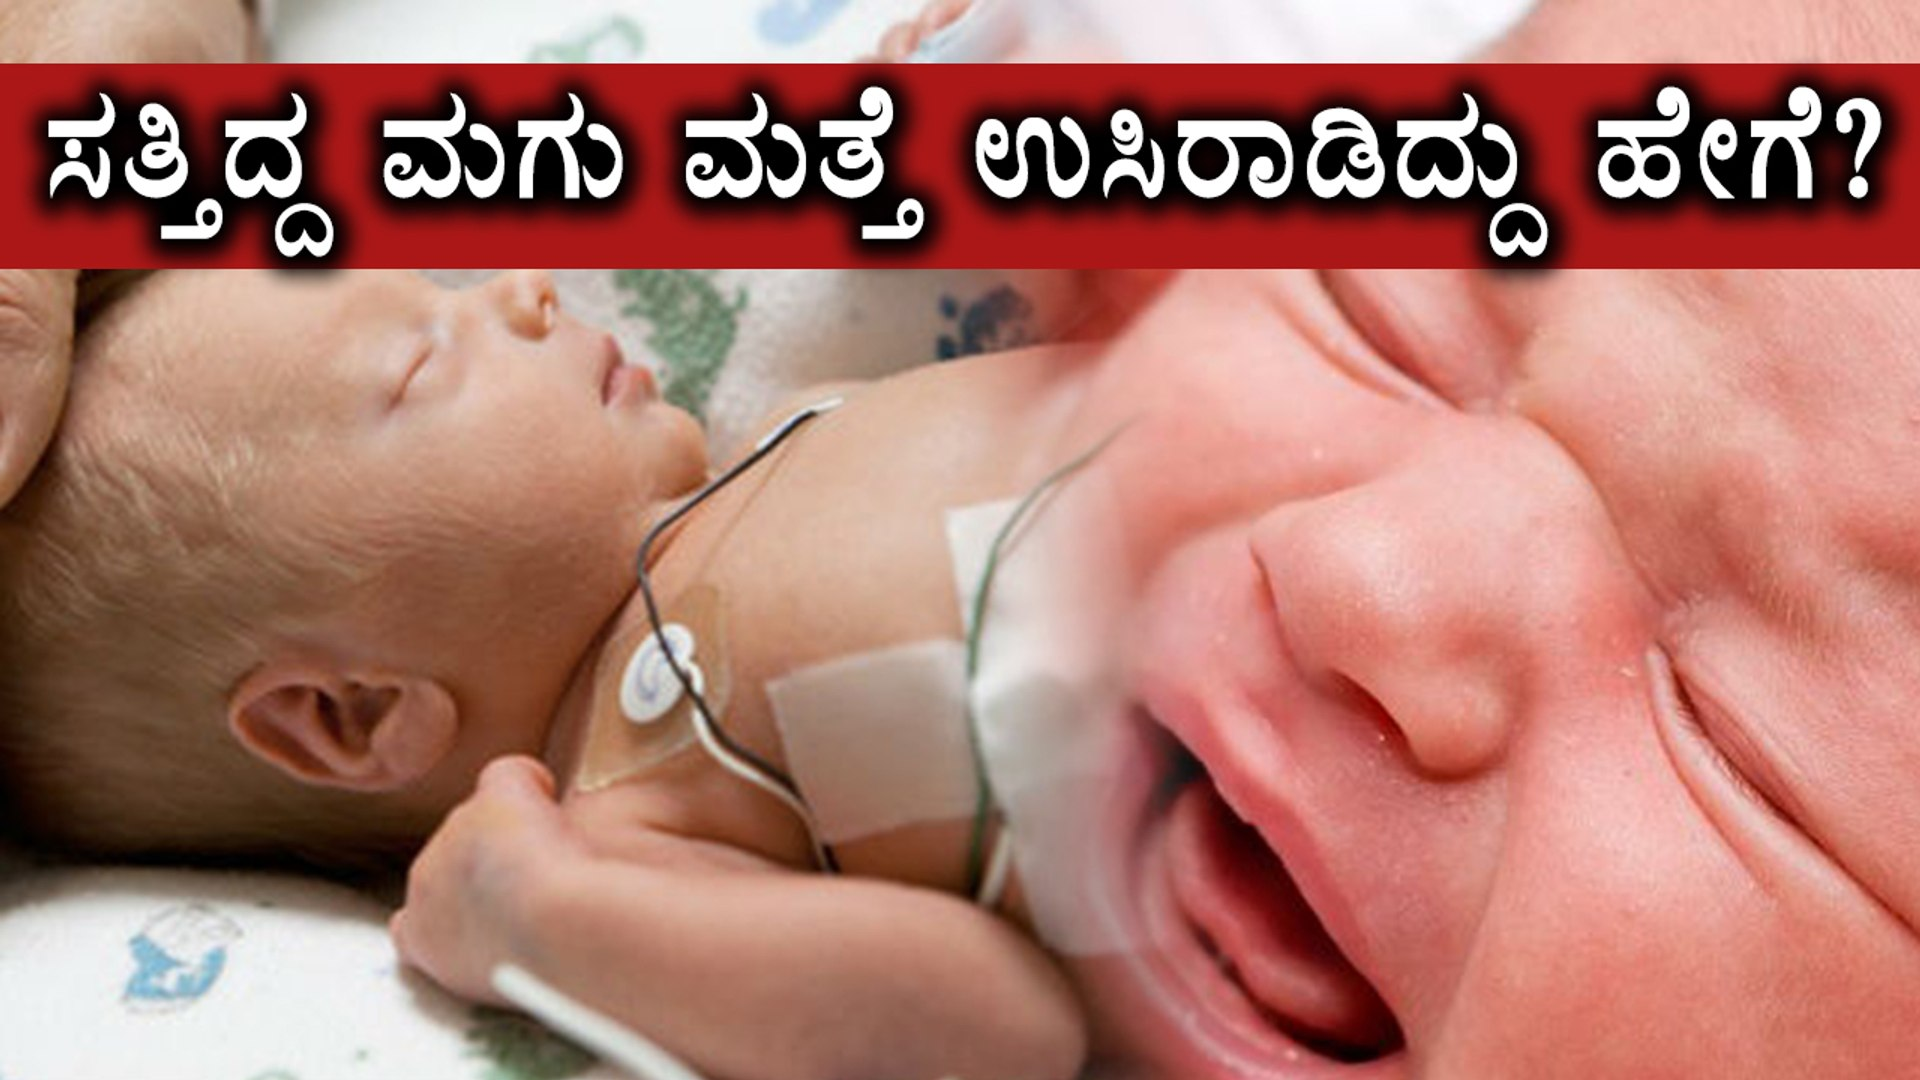 An Insane Incident Happened | Whom To Be Blamed, Parents or Doctor?  | Oneindia Kannada